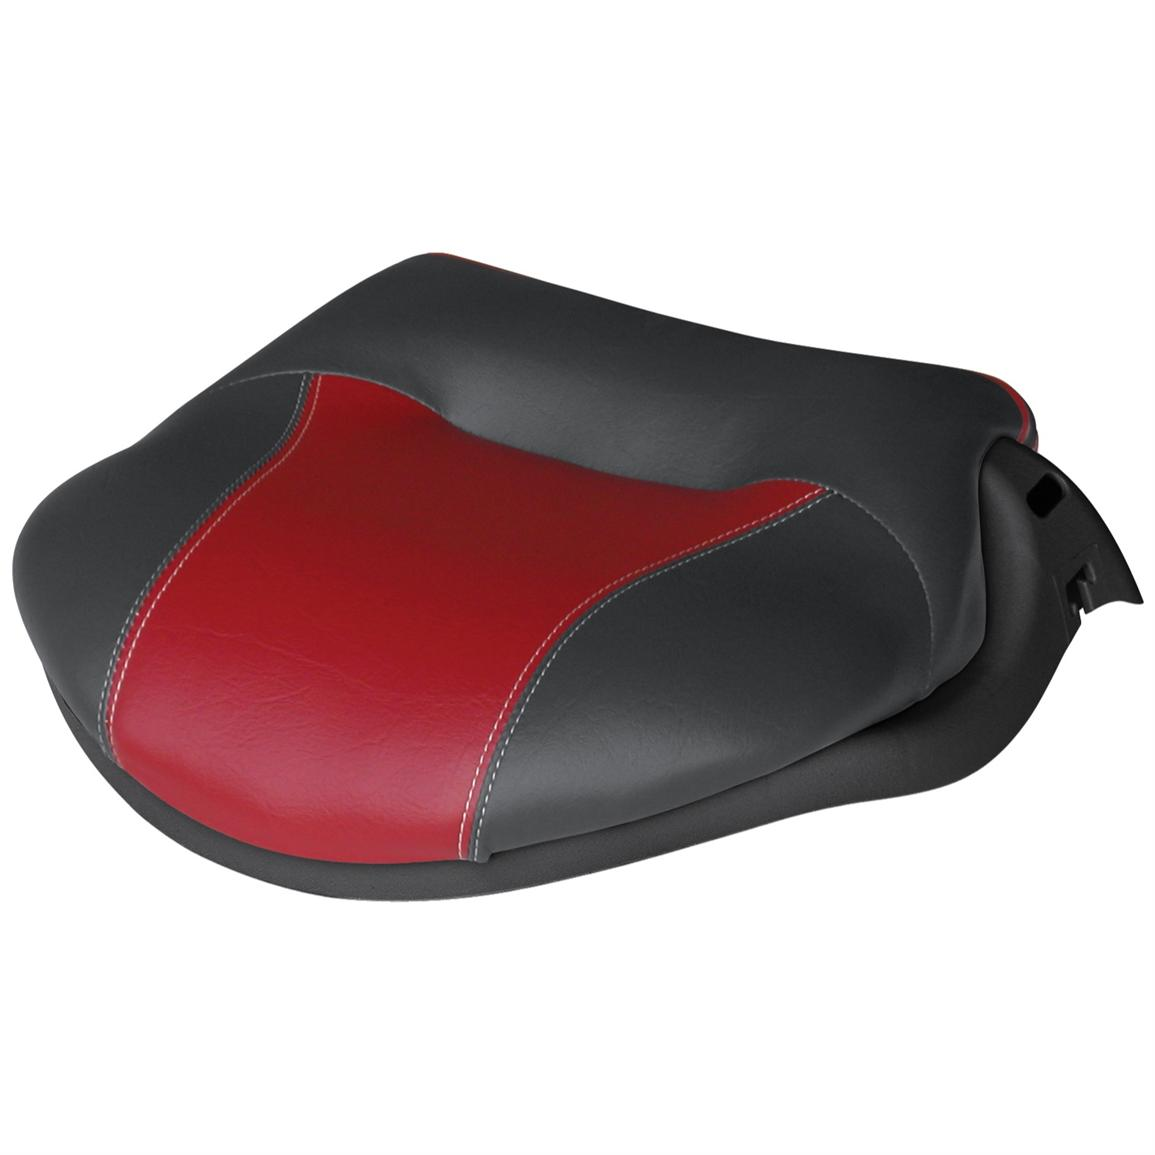 Wise® Casting Deck Pro Seats, Charcoal / Red